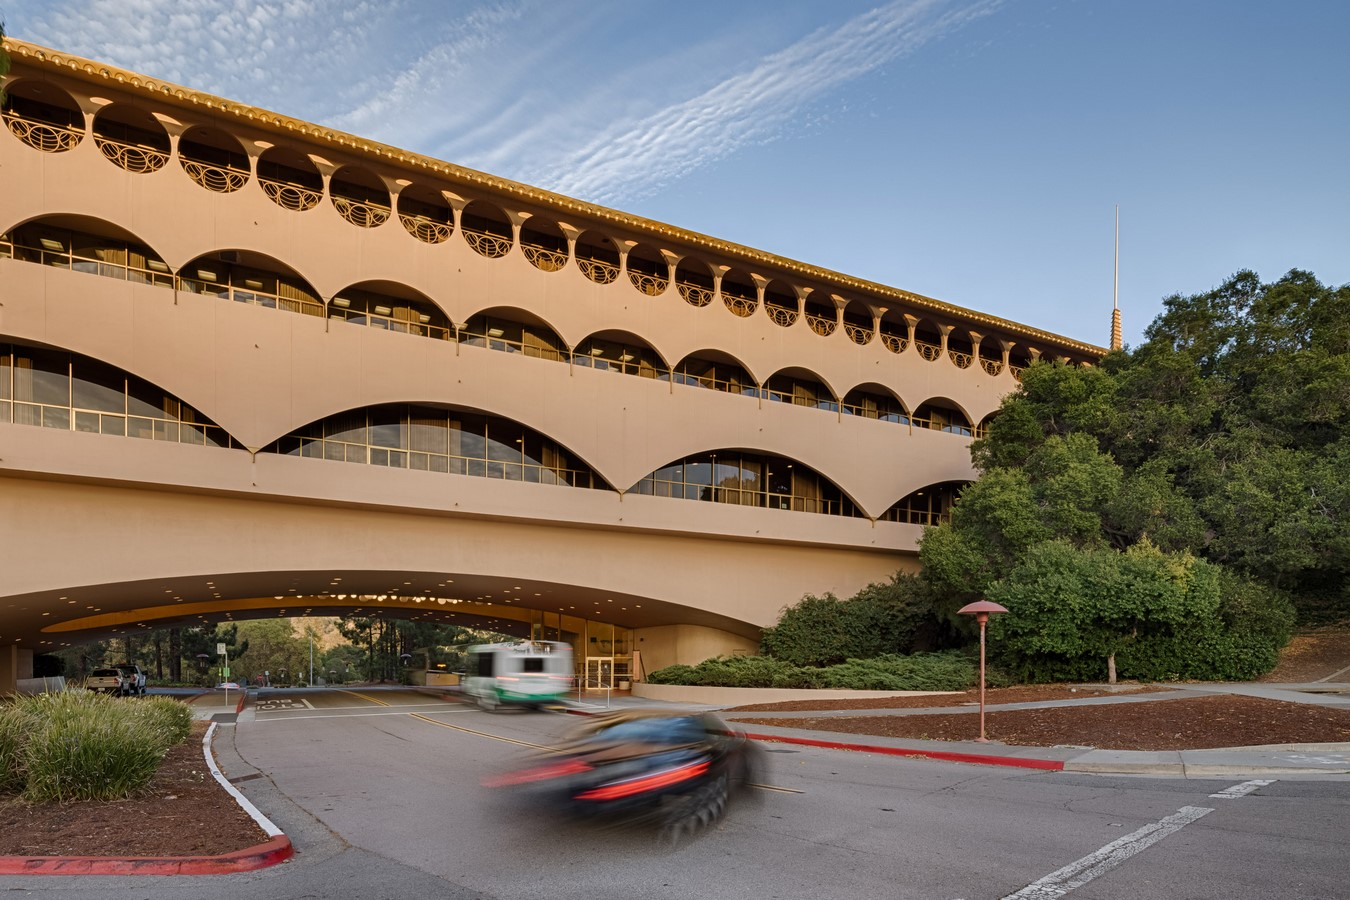 Marin County Civic Center in San Rafael, California by Ar. Frank Llyod Wright - Sheet1